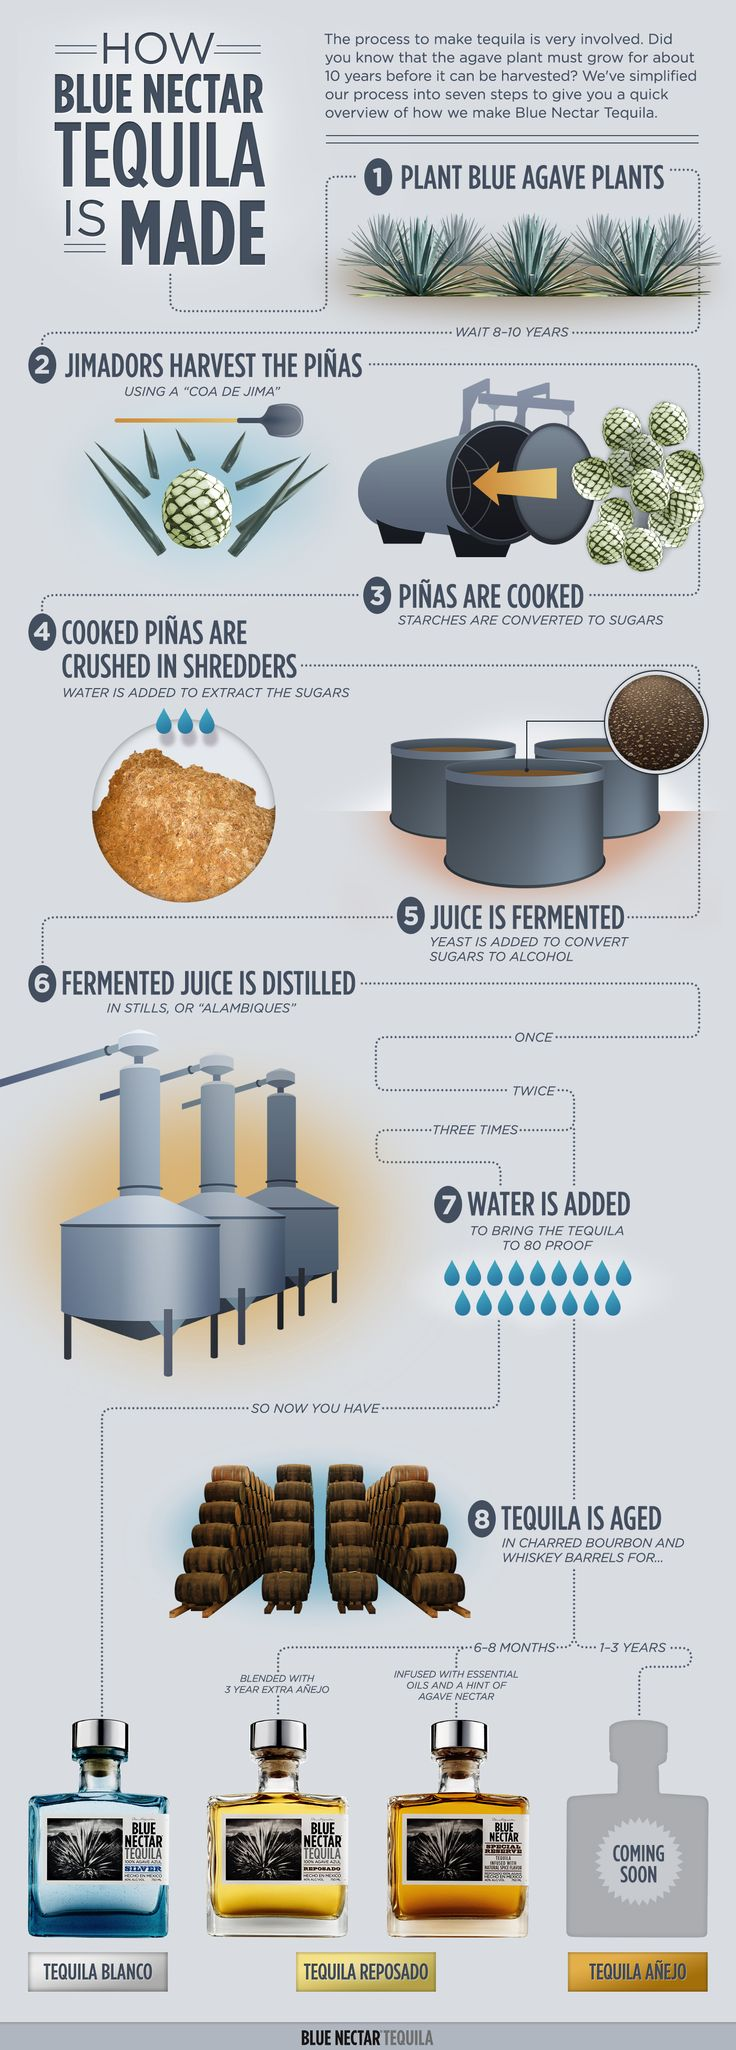 How Tequila is Made #tequila #infographic